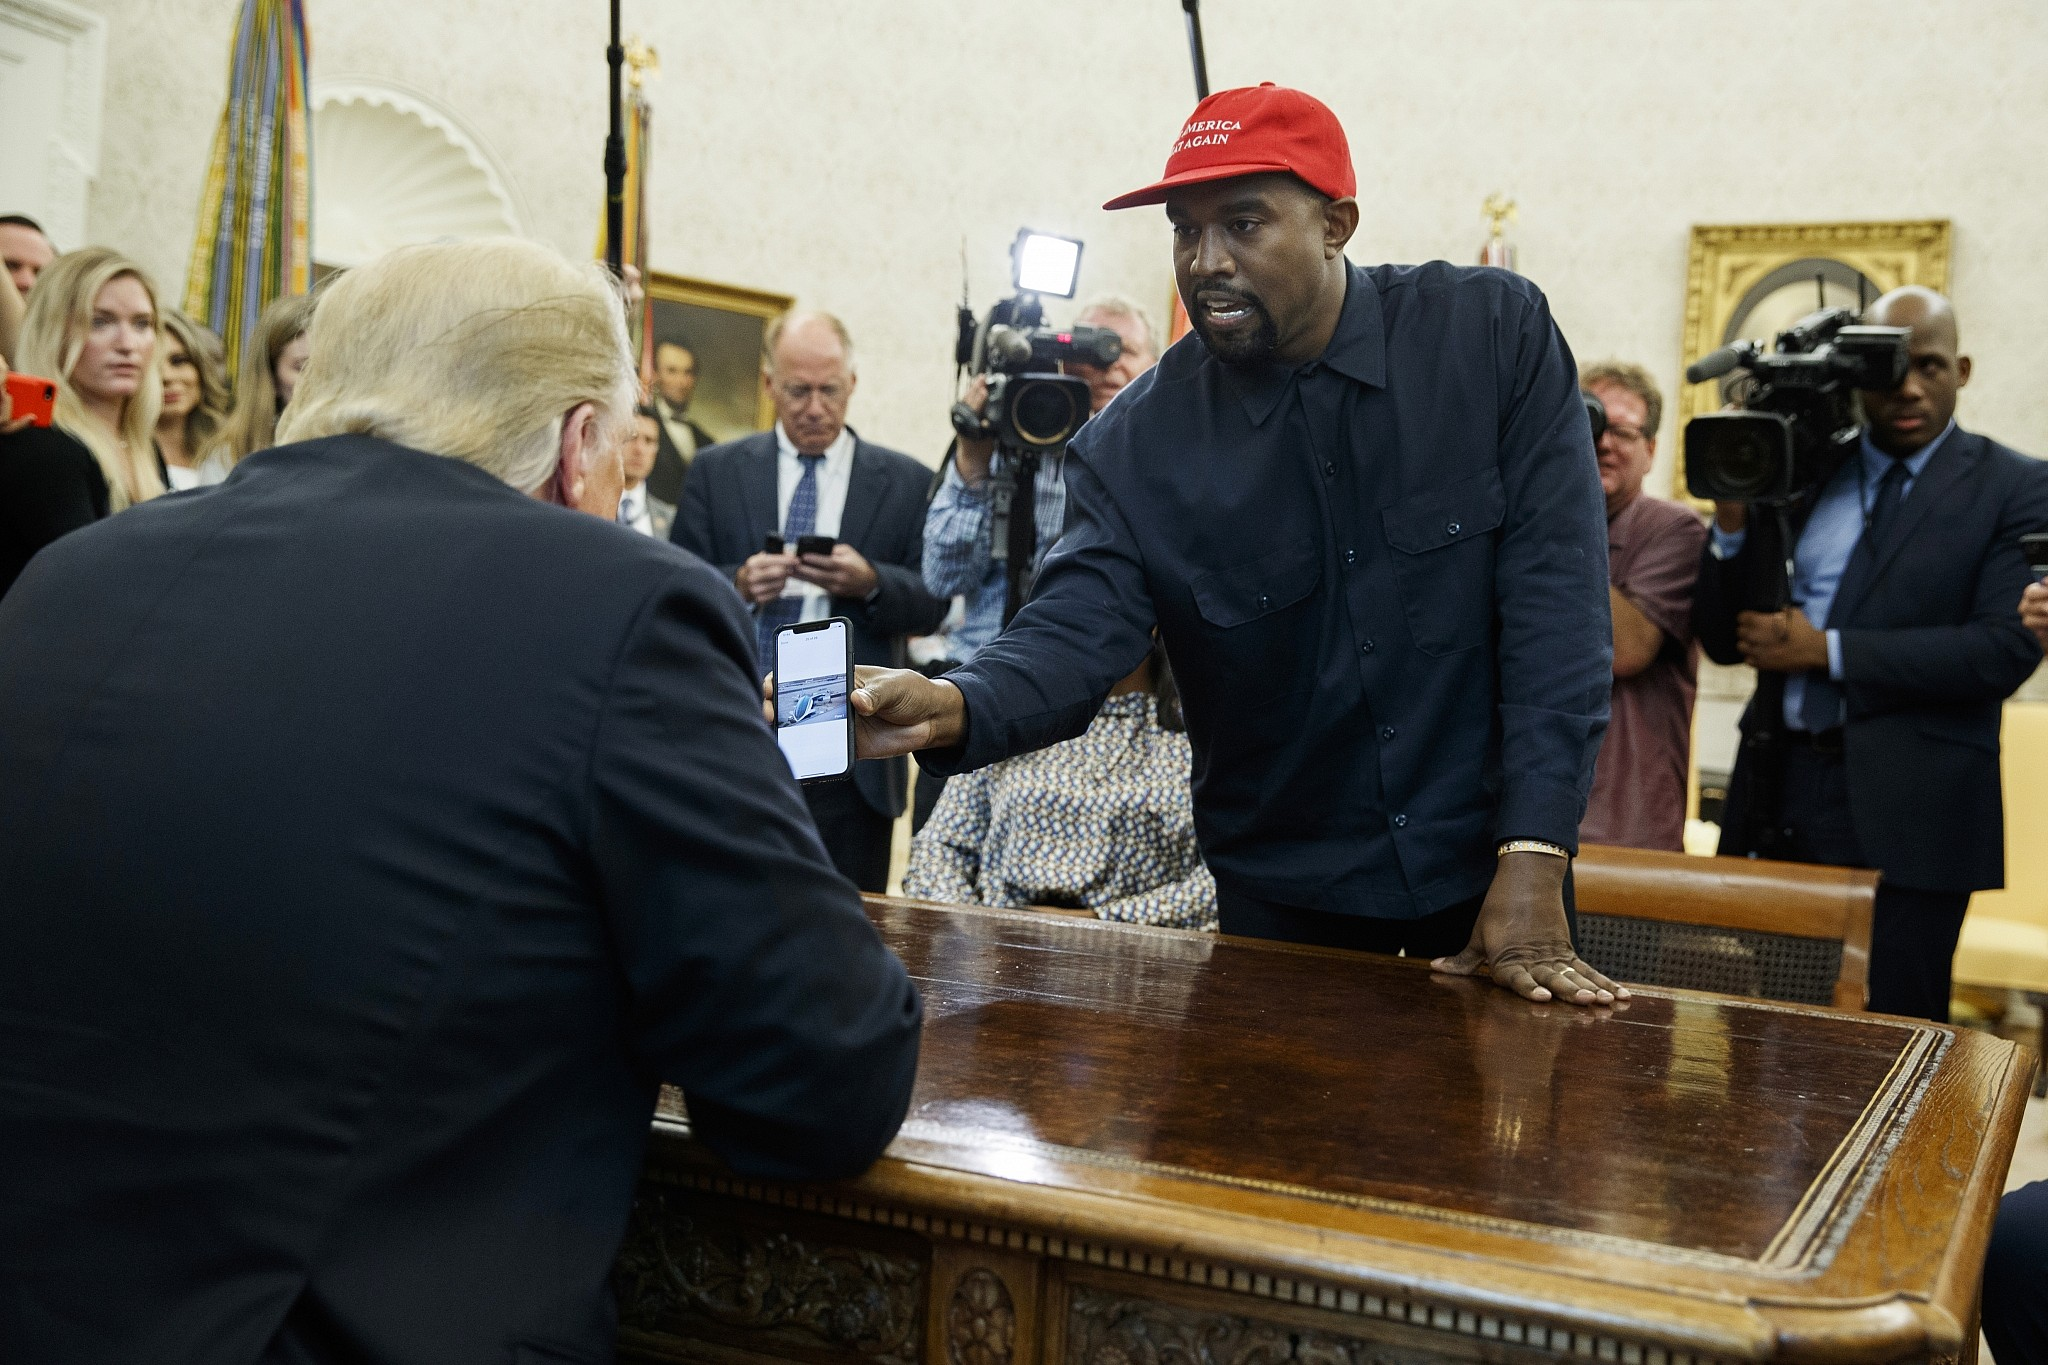 Kanye West reactivates Twitter account with weird video about mind control